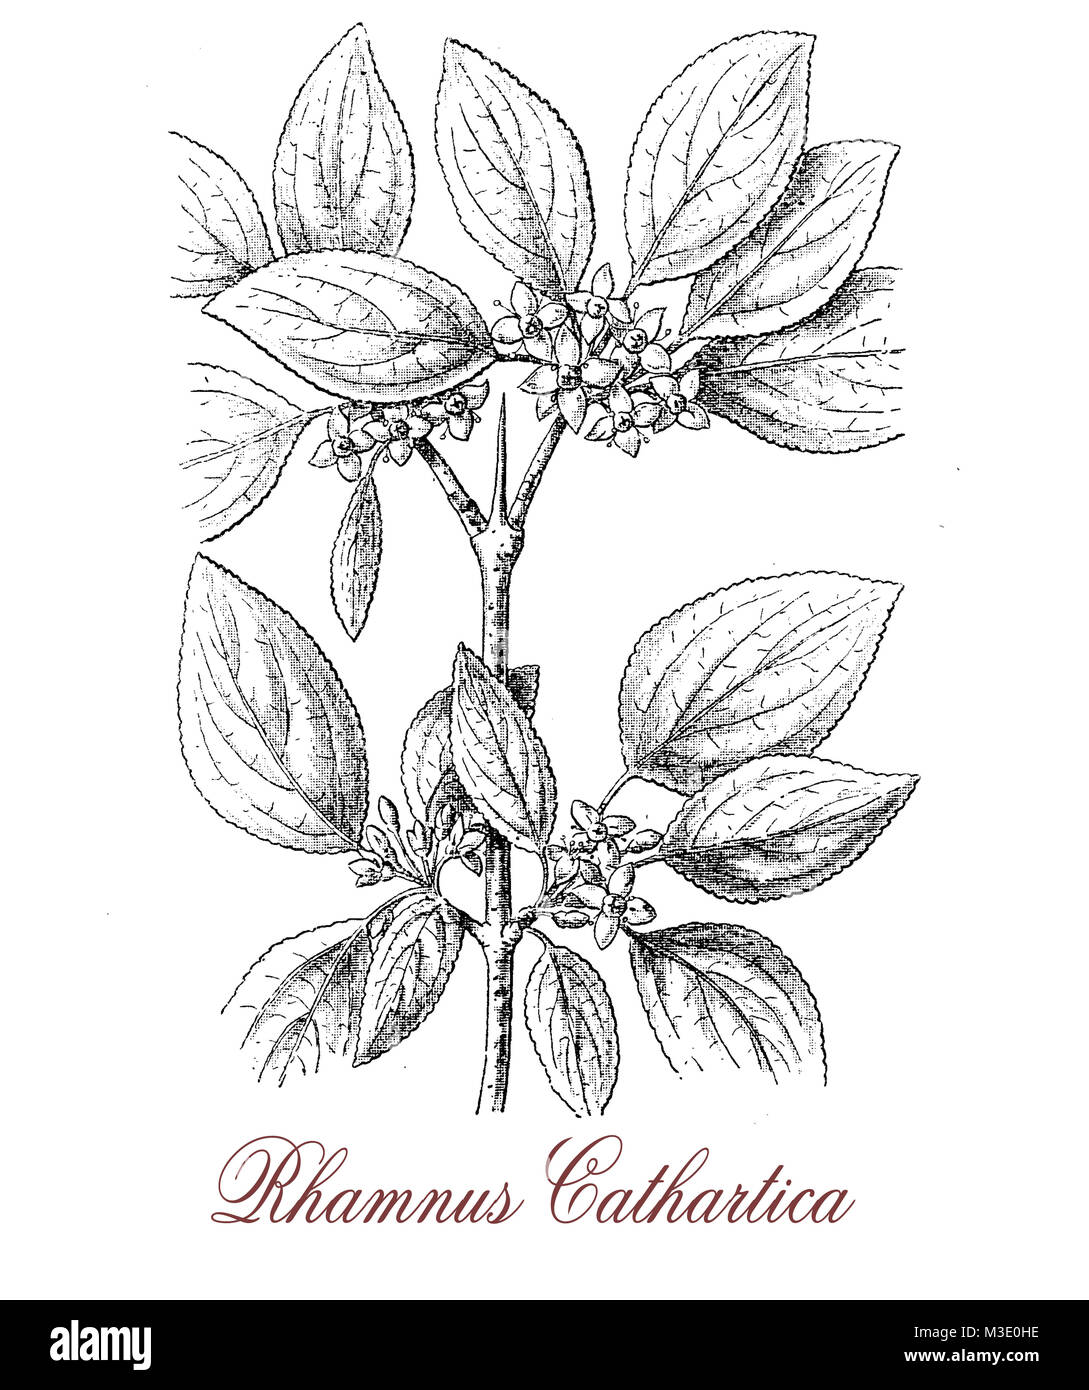 vintage engraving of common buckthorn or rhamnus cathartica, spiny shrub with black berries,  the plant is mildly - Stock Image